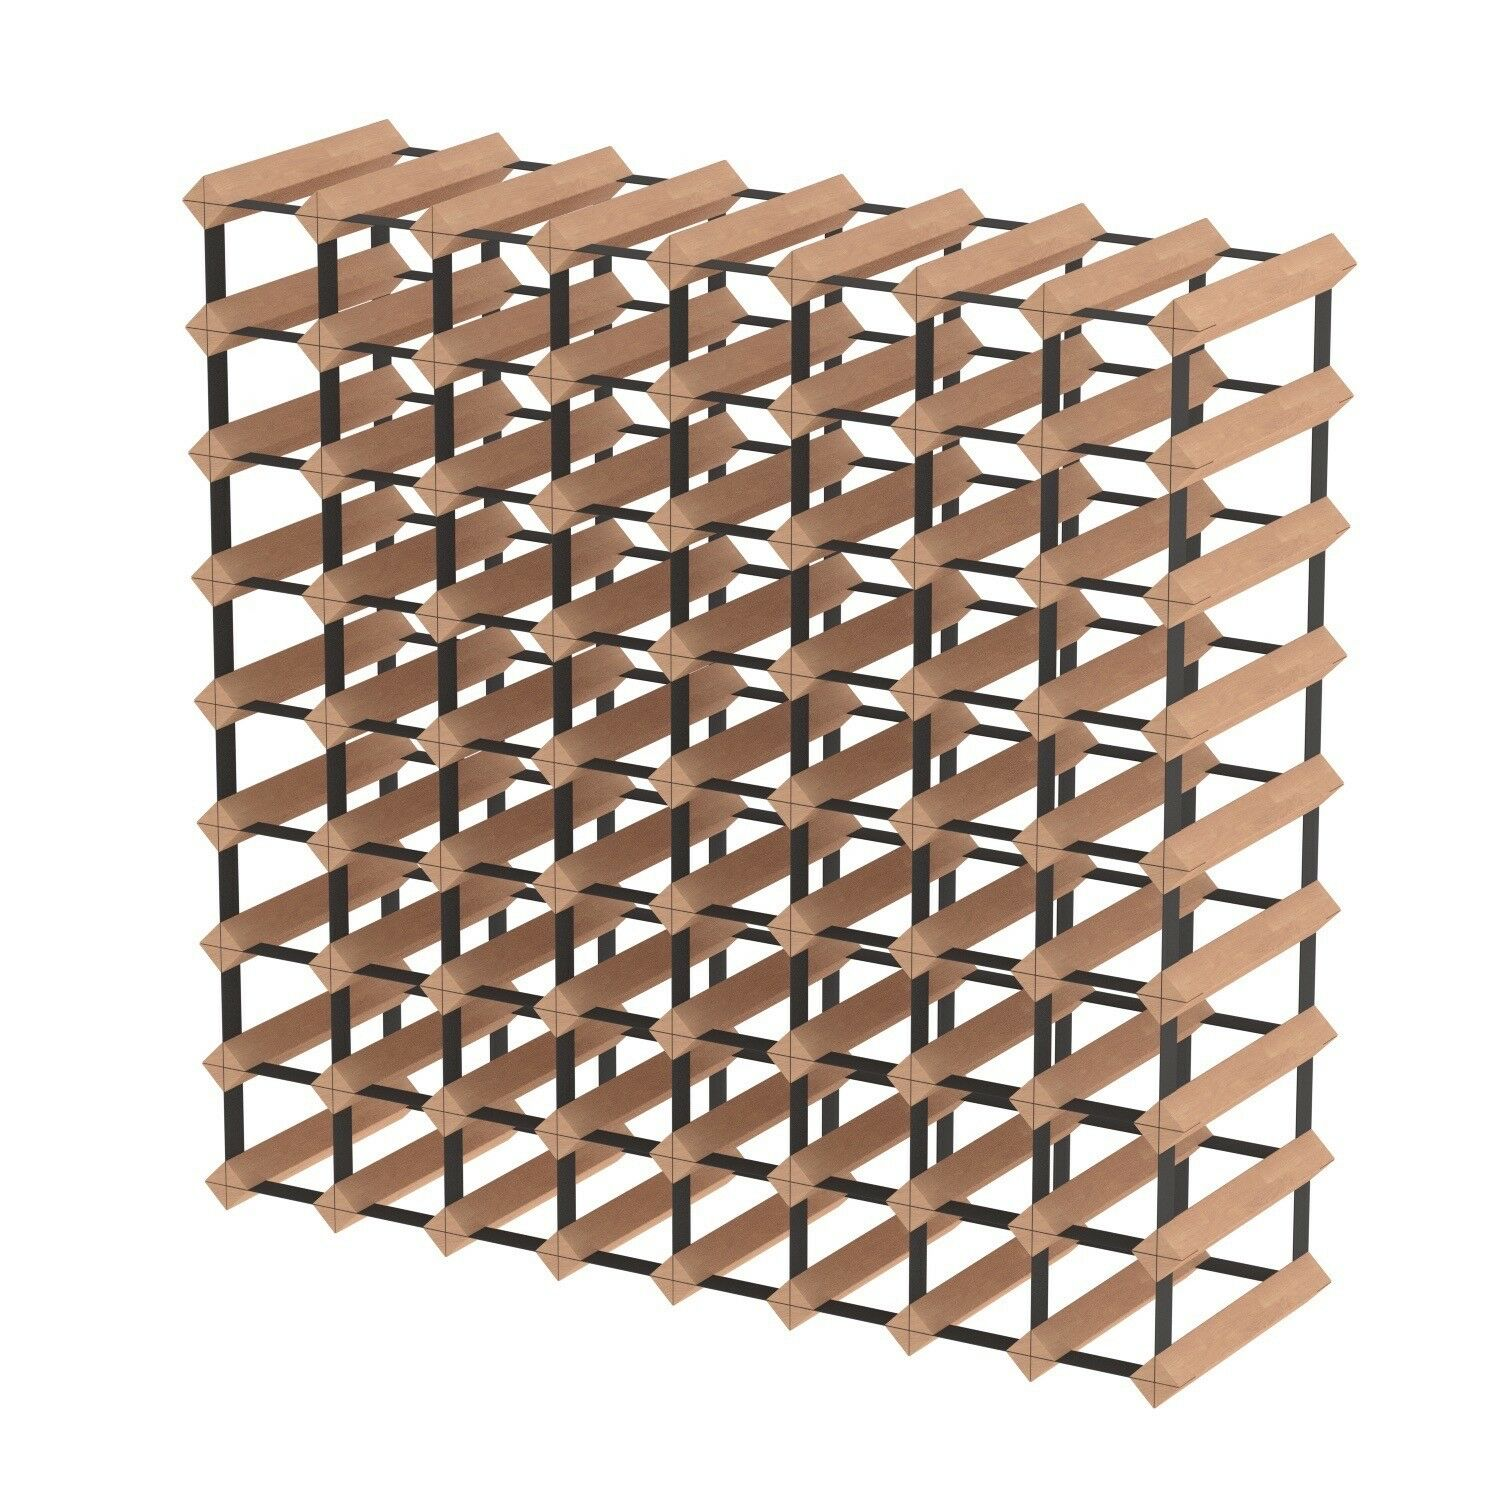 72 Bottle Timber Wine Rack - Fully Assembled and Delivered - Free Aus Postage